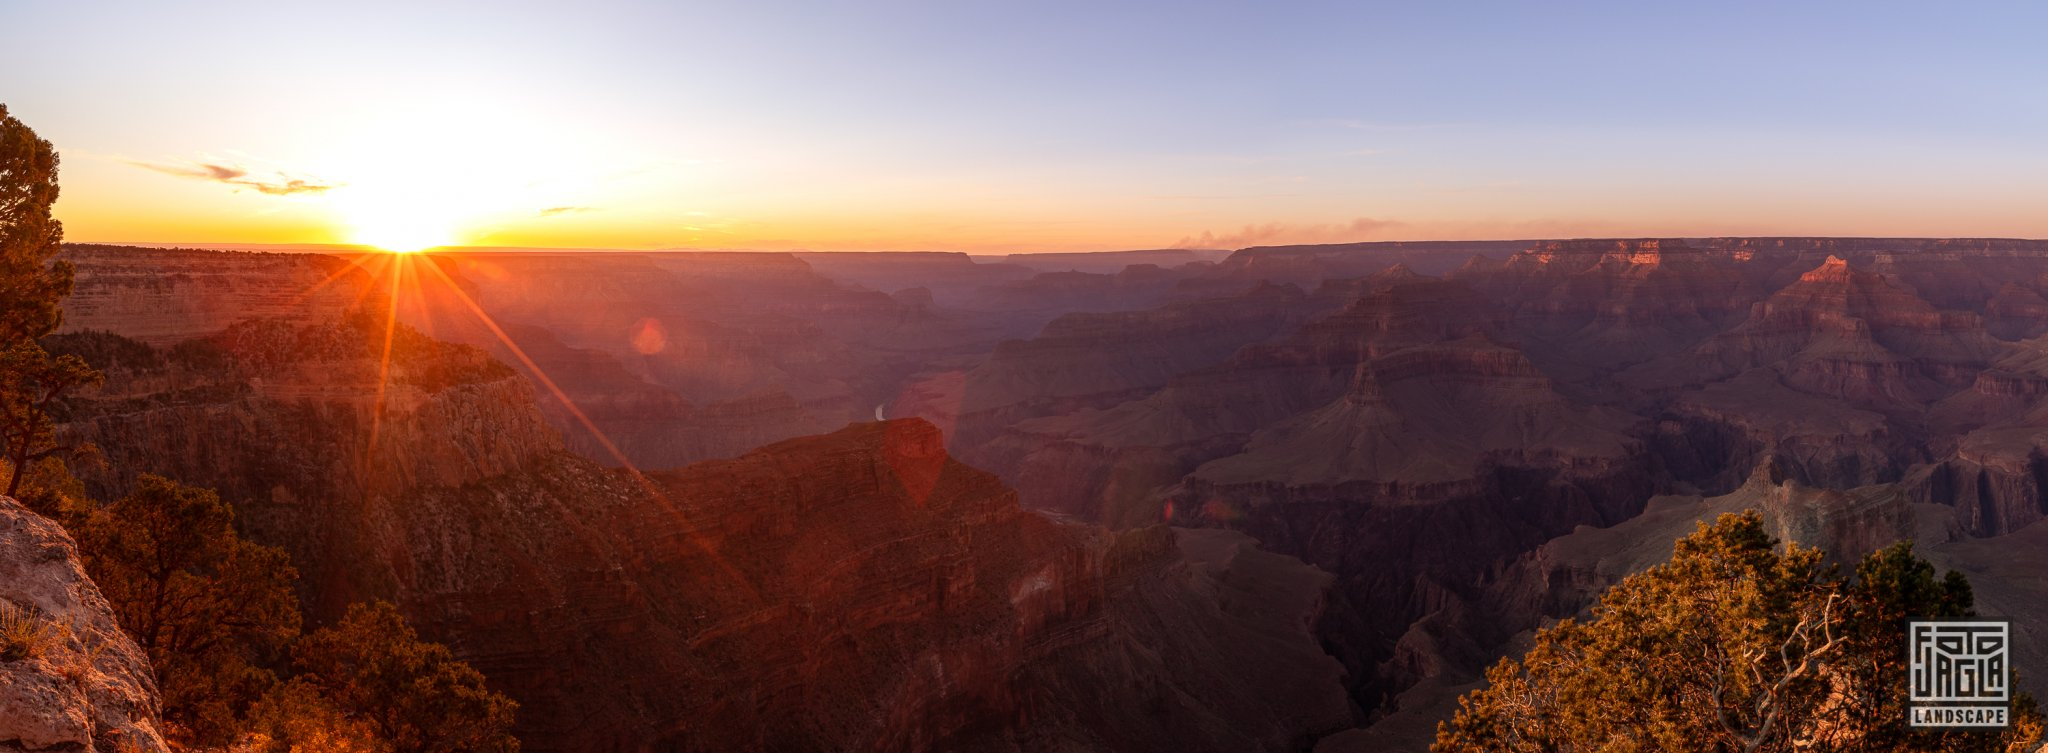 Sunset at Hopi Point in Grand Canyon Village